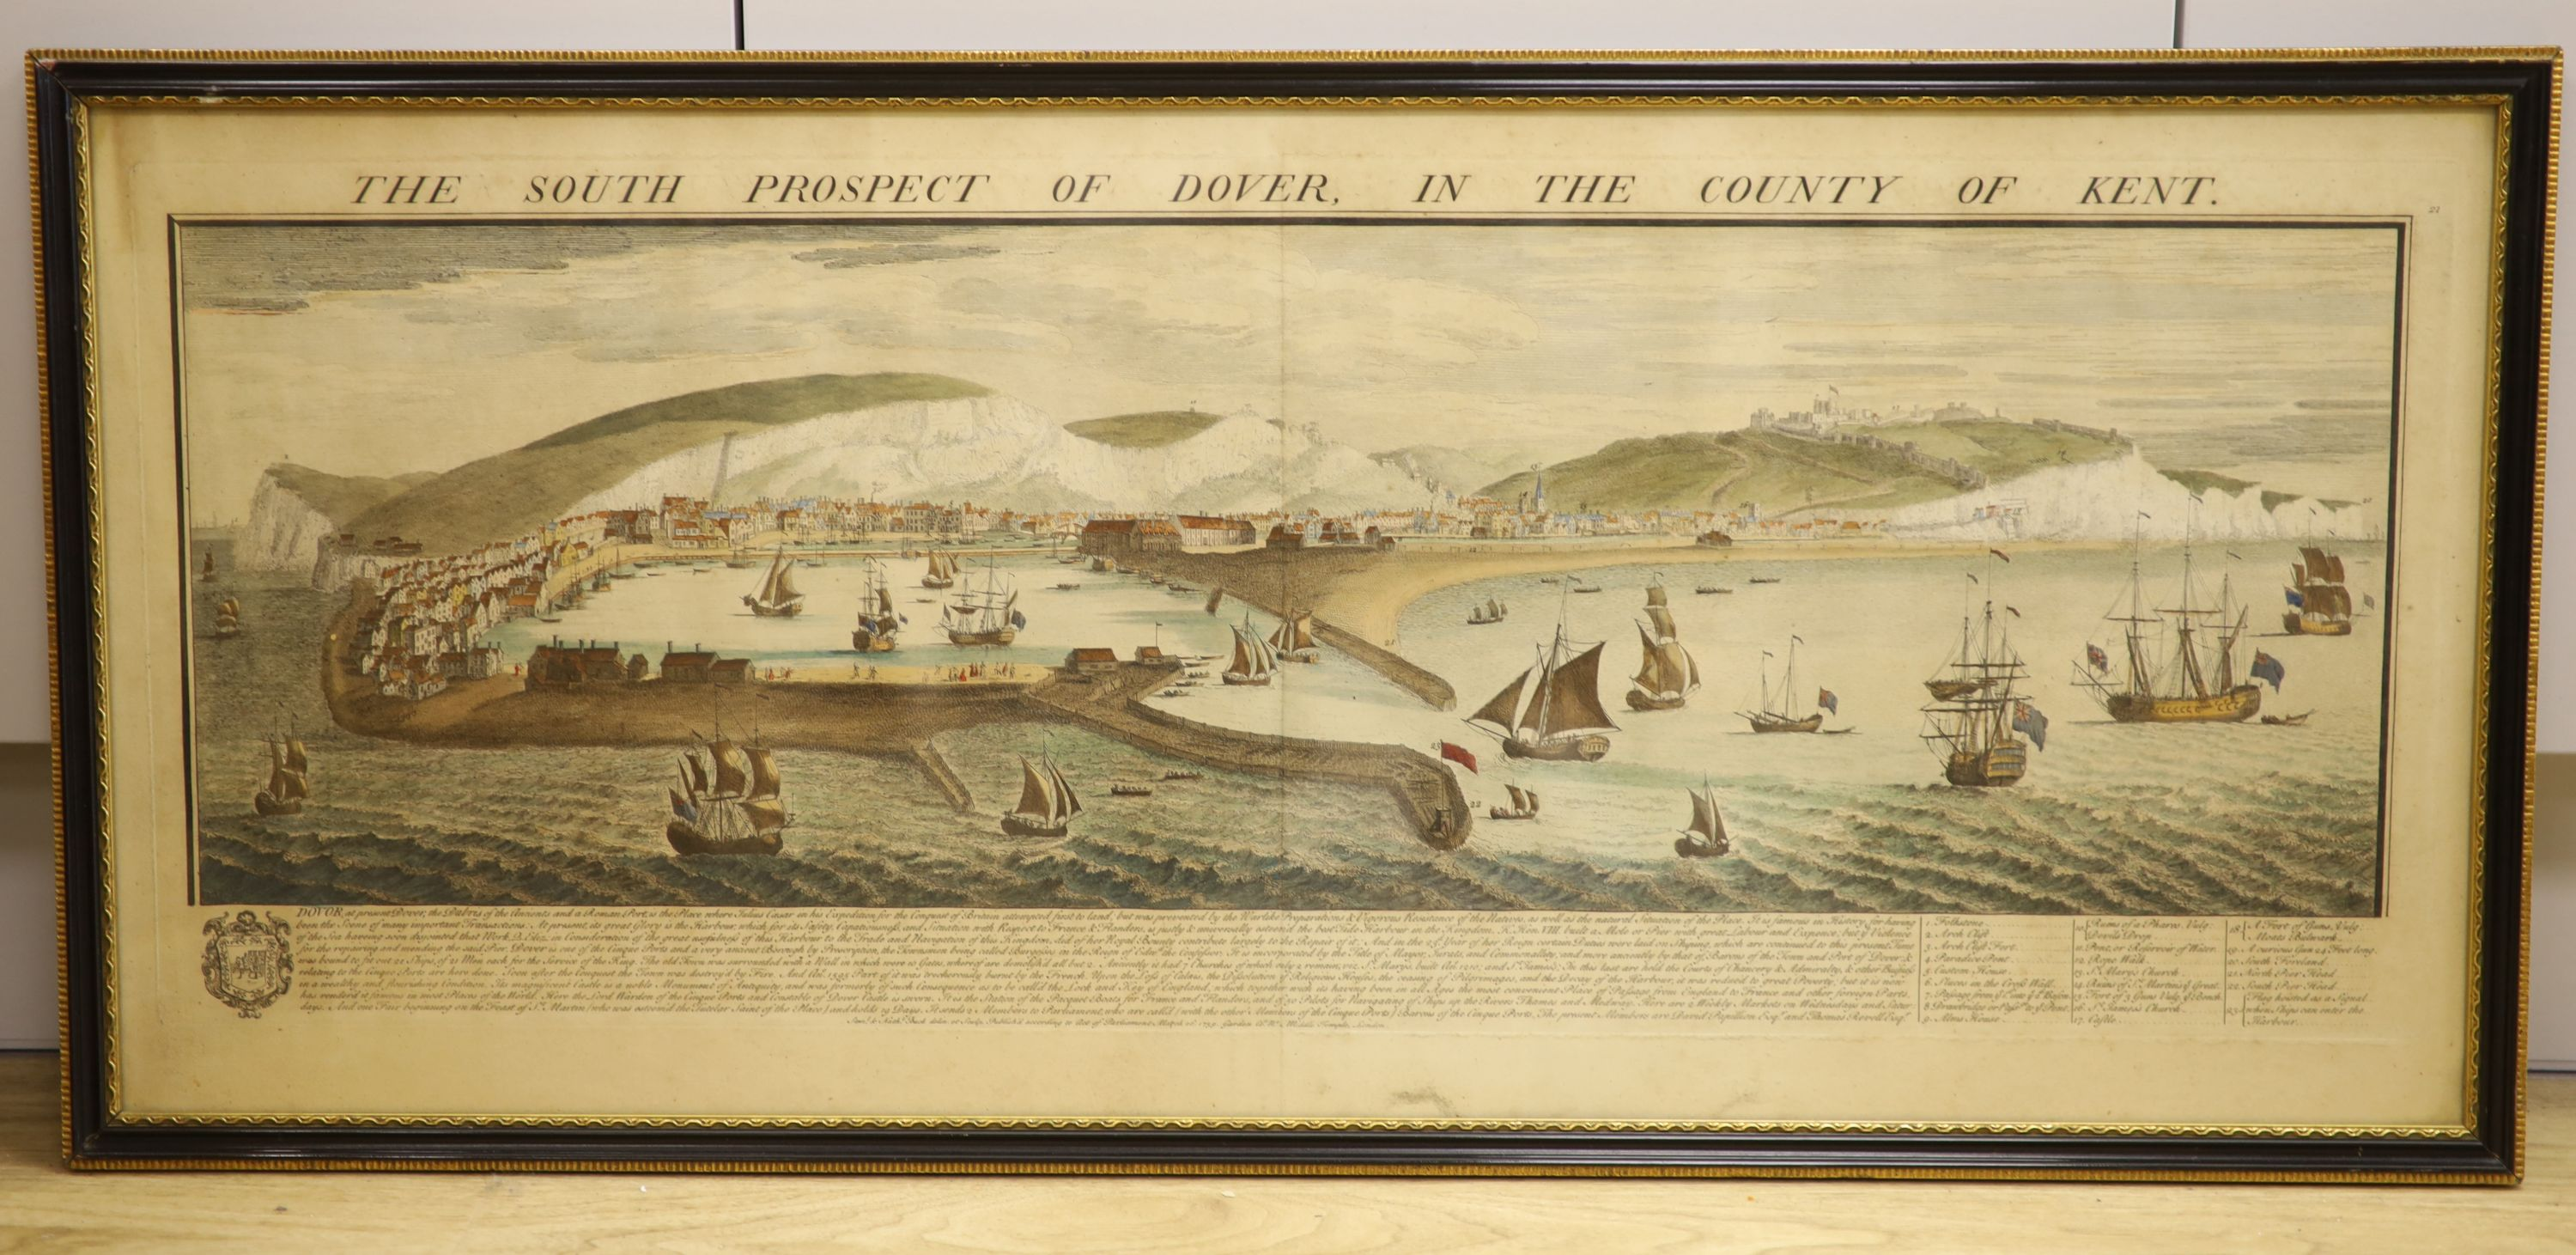 S and N Buck, coloured engraving, The South Prospect of Dover in the County of Kent, 35 x 83cm - Image 2 of 2